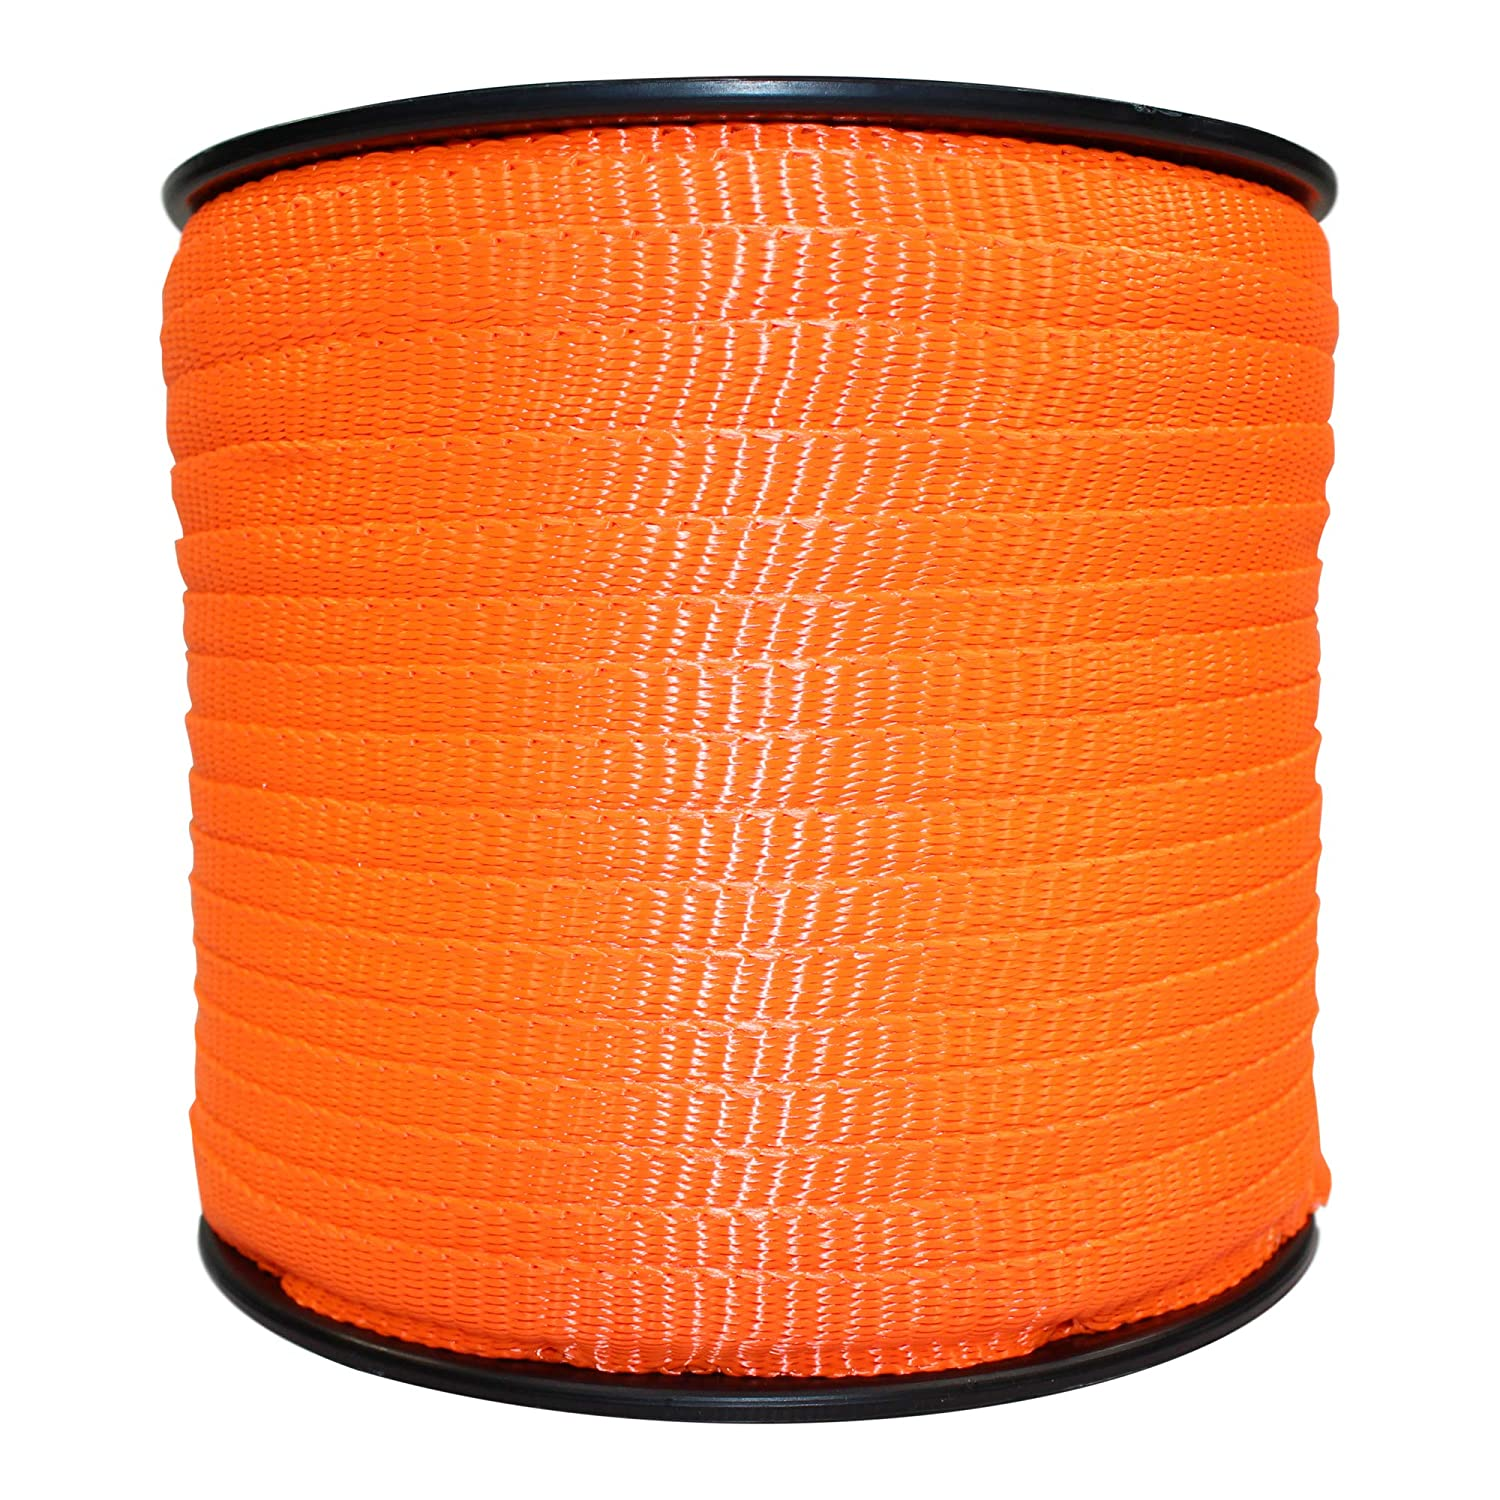 Flat Rope Durable Polyester Pull Tape Strap Gardening - SGT KNOTS Arborist Commercial 5//8 inch Oil Resistant Rot 300 ft - Orange Marine Utility Polyester Webbing Moisture UV